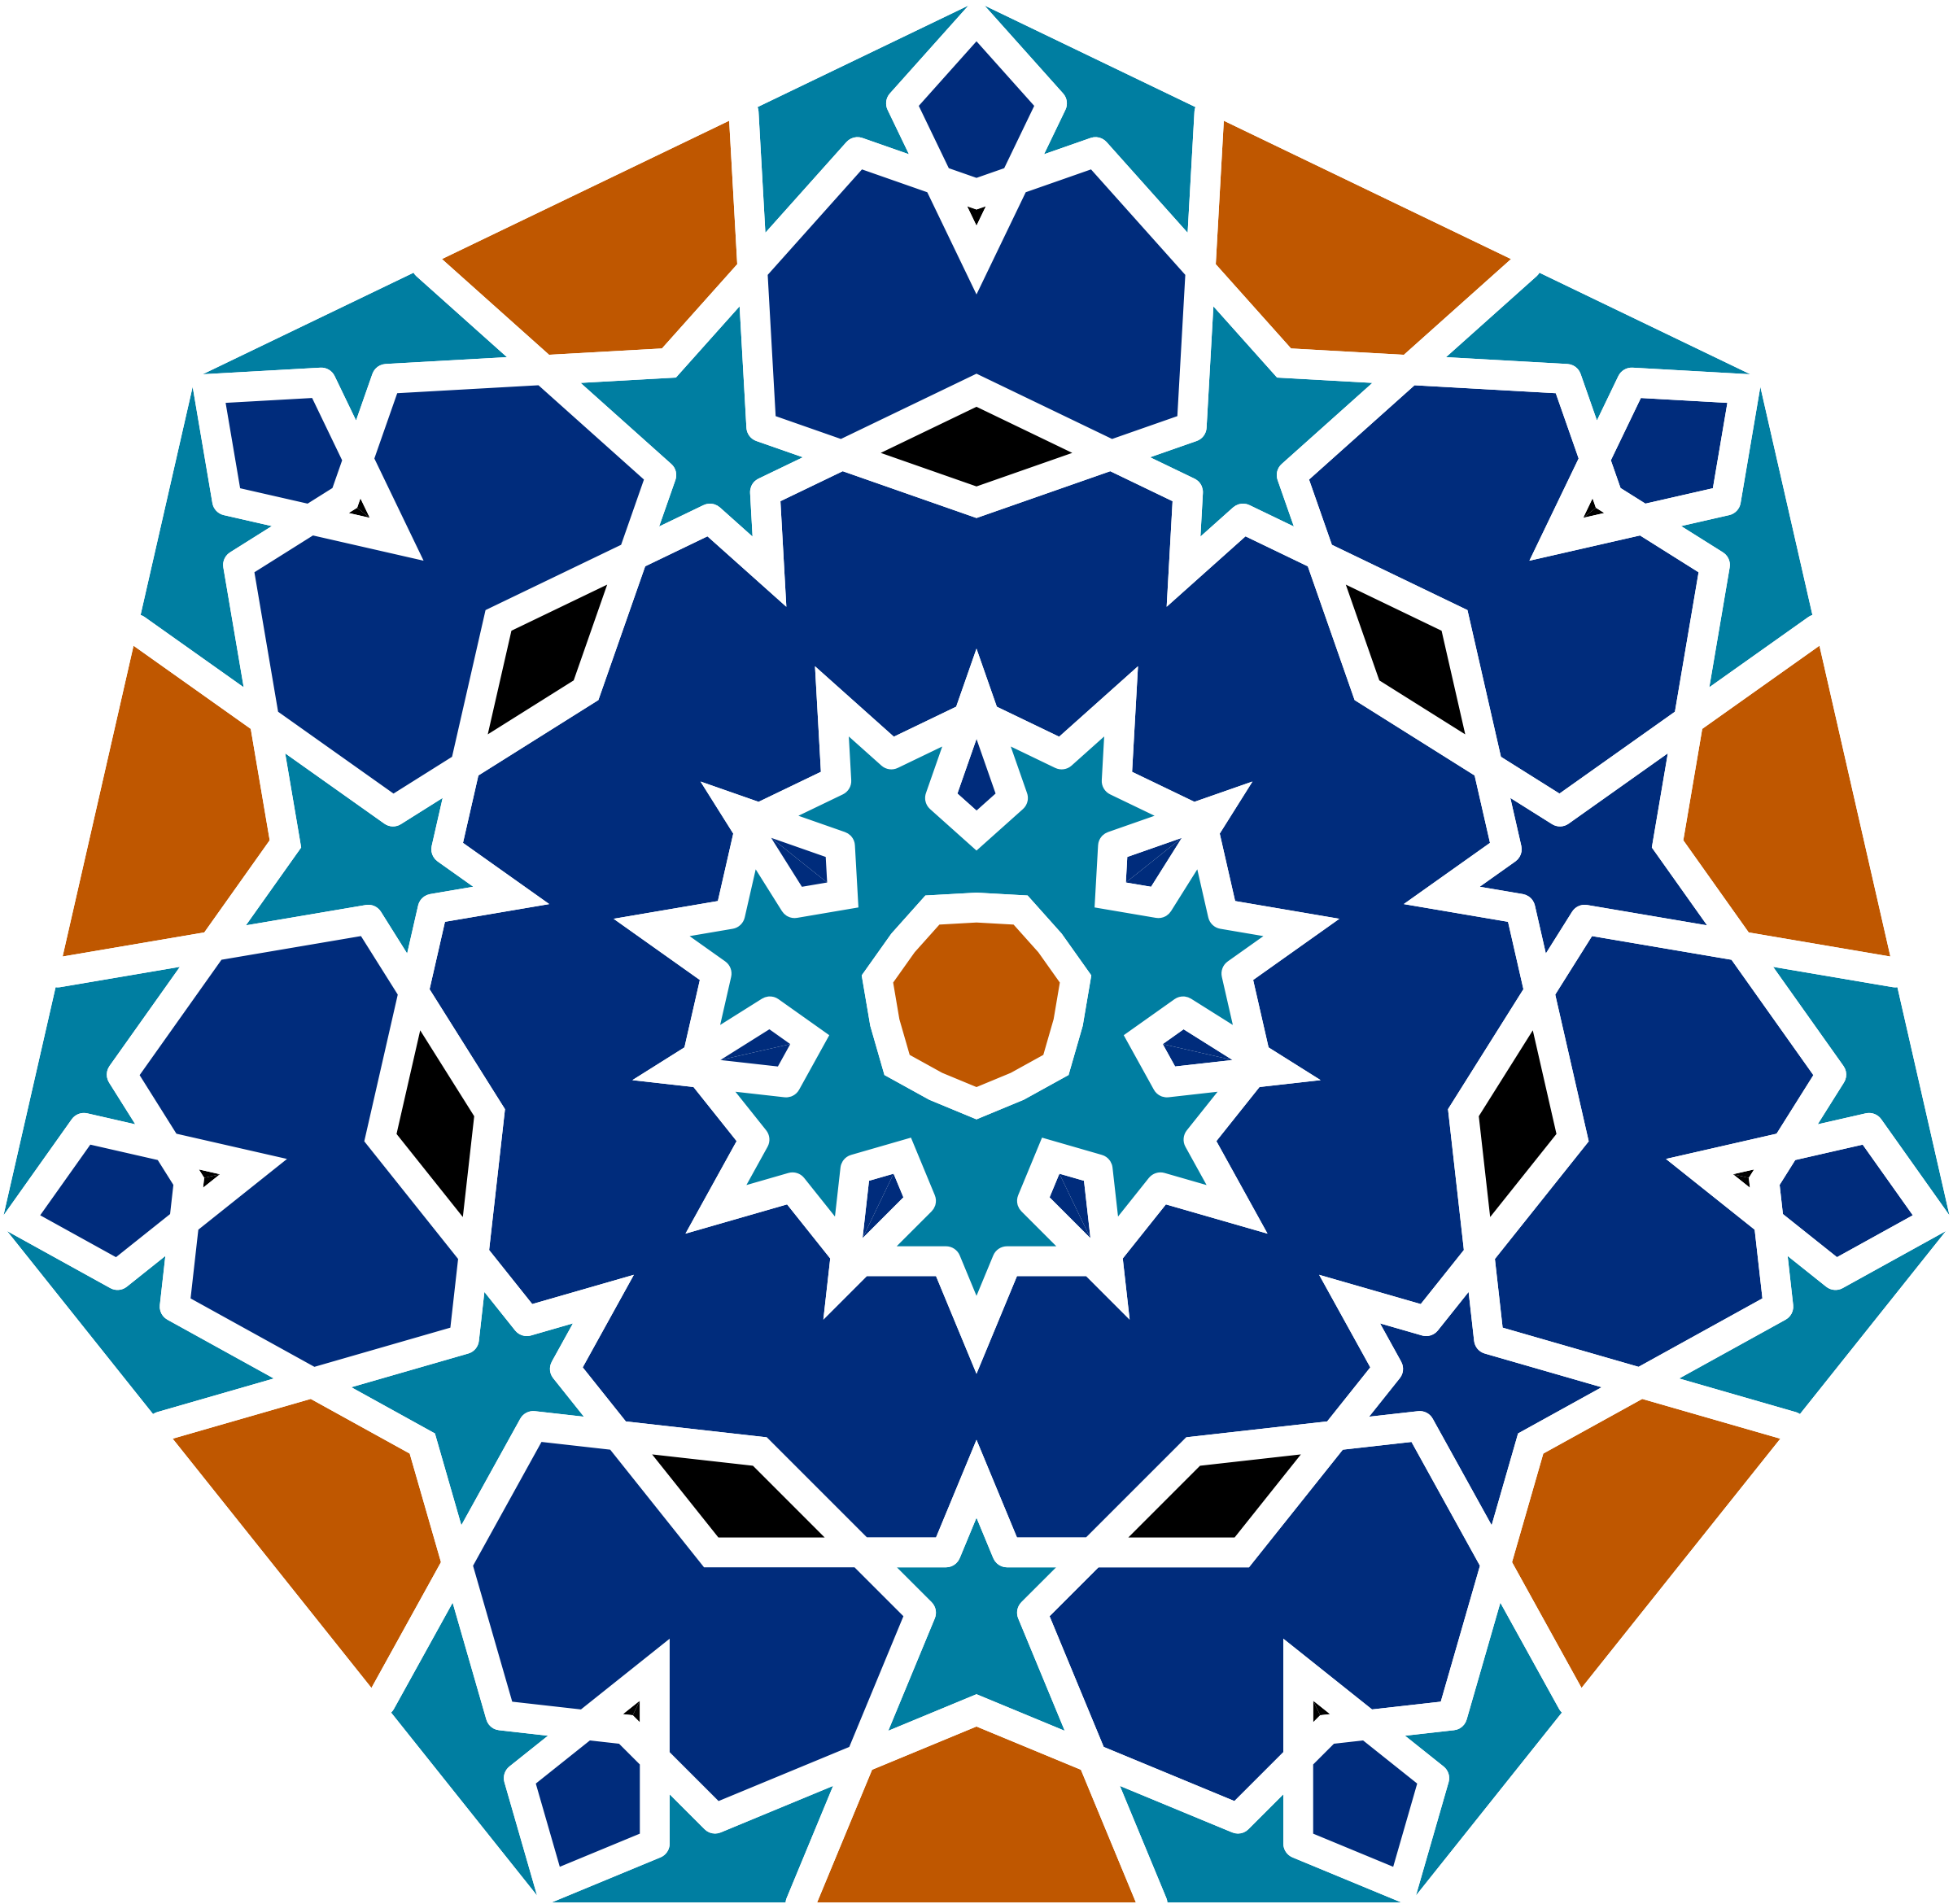 Islamic Geometric Tile by GDJ